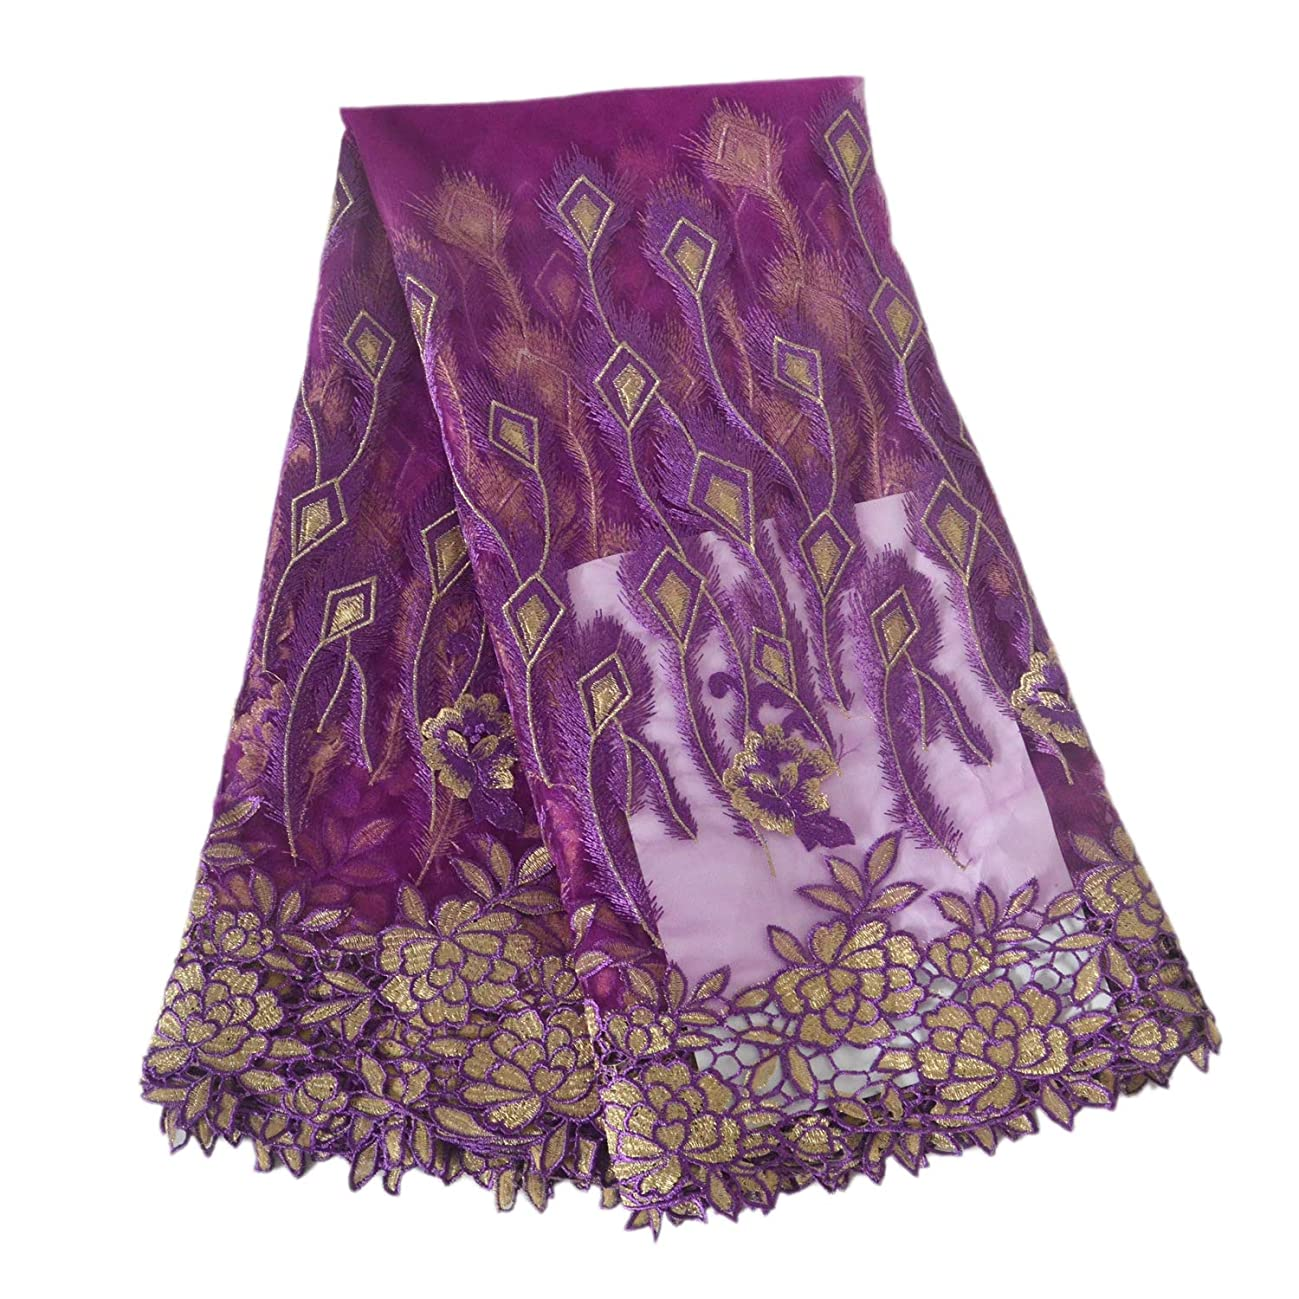 Aisunne African Lace Fabrics 5 Yards Nigerian French Lace Fabric with Fashion Embroidered Flower for Wedding Party Dresses (Purple)